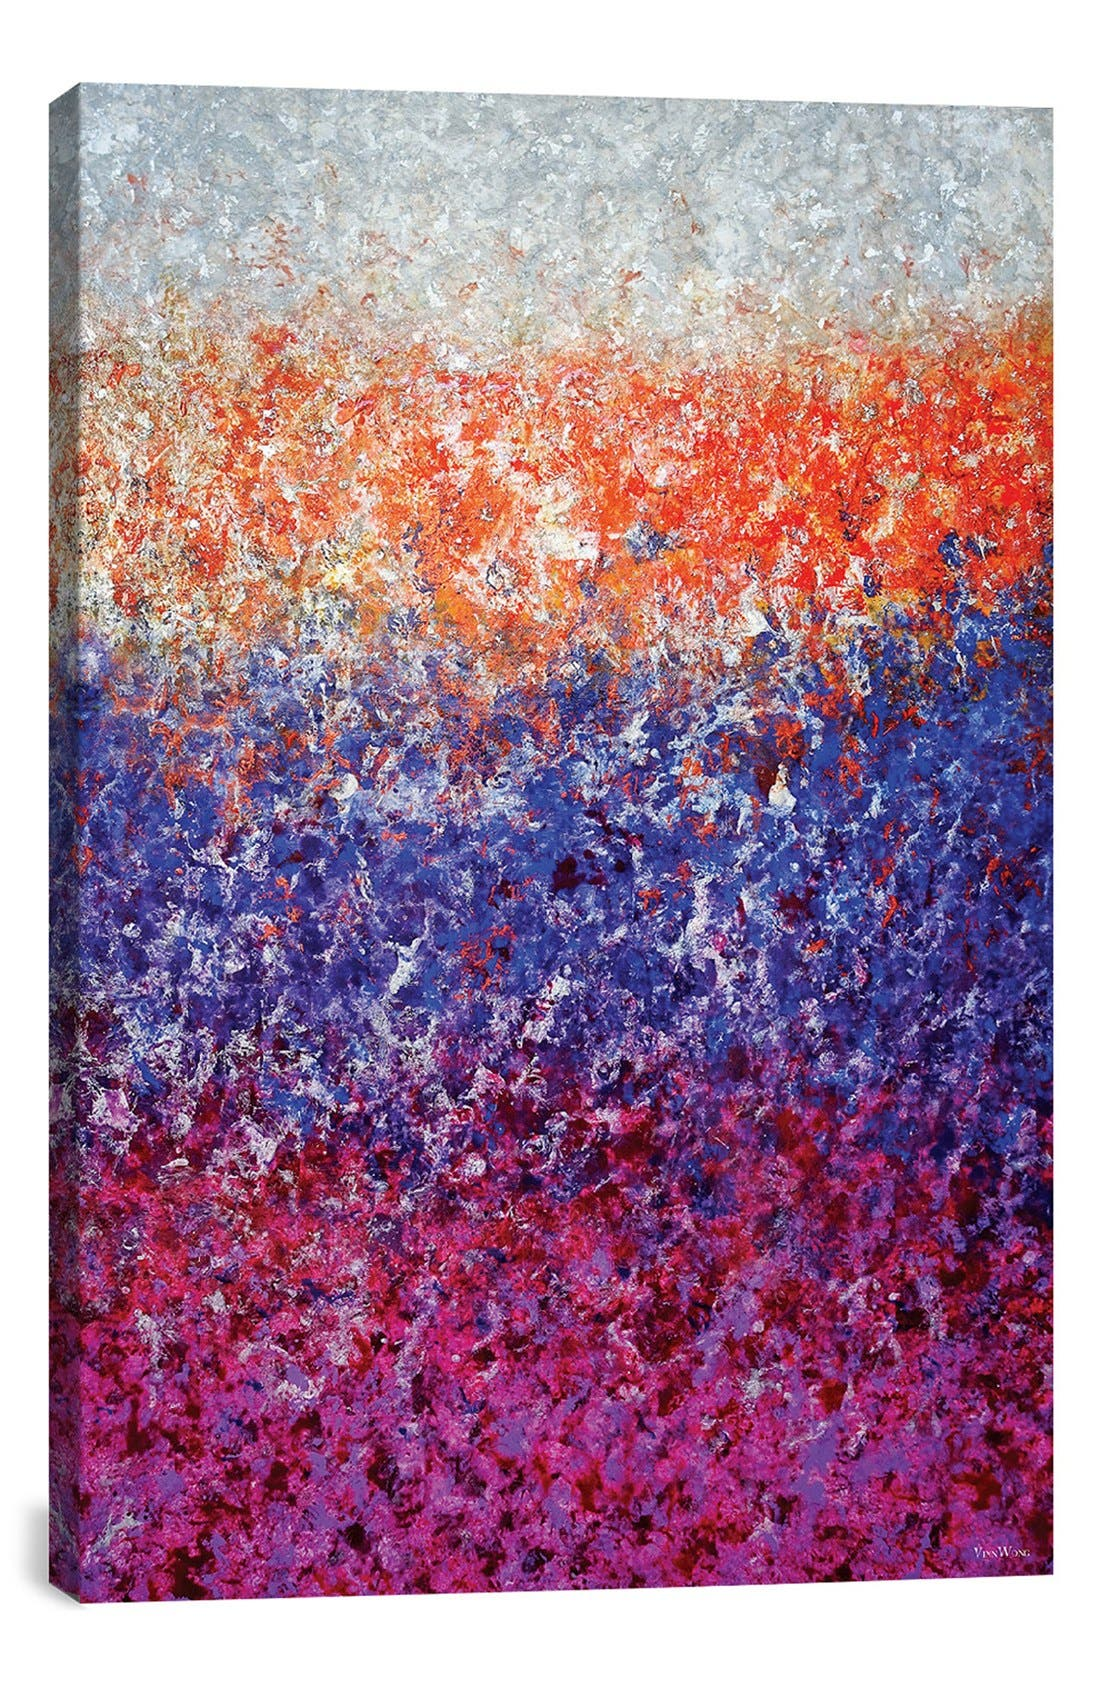 Alternate Image 1 Selected - iCanvas 'Dying Light' Giclée Print Canvas Art